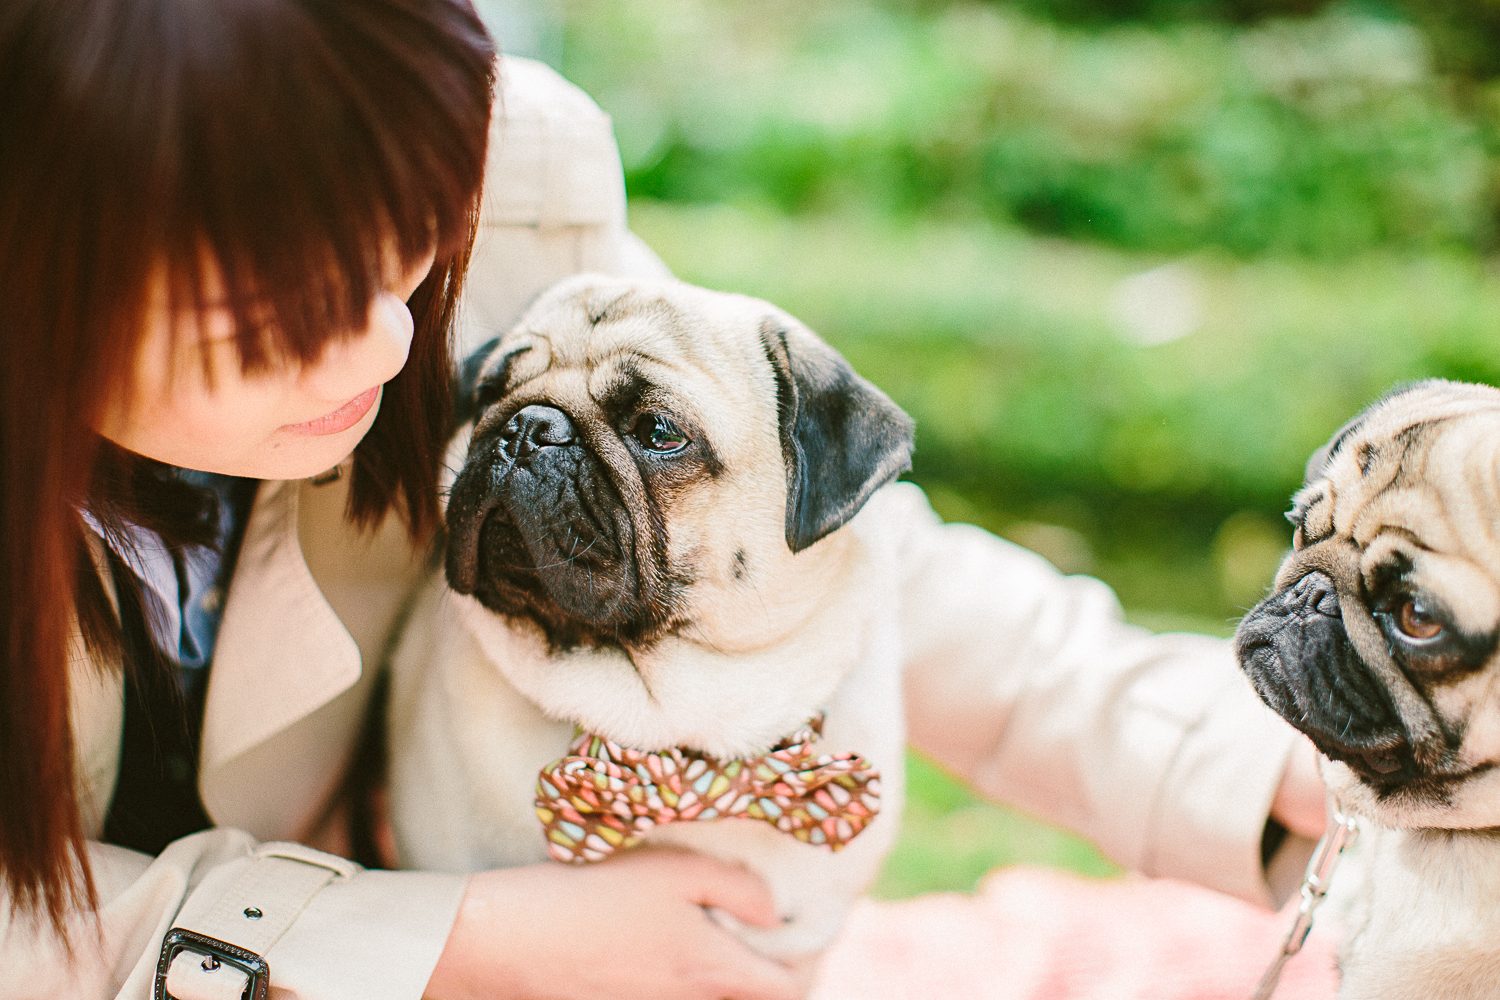 twoguineapigs_pet_photography_oh_jaffa_picnic_pugs_1500-4.jpg